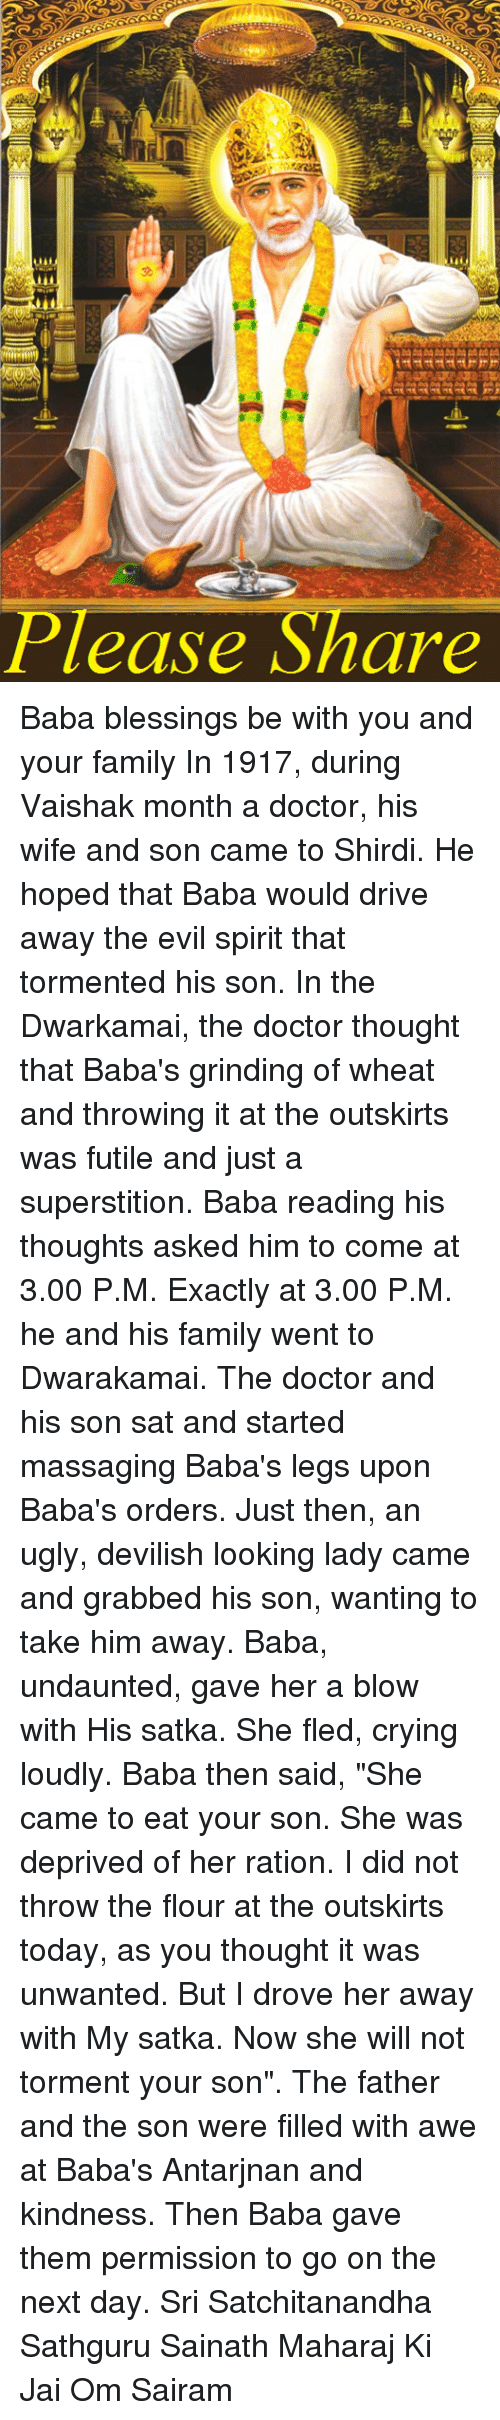 "Memes, 🤖, and Rational: Please Share Baba blessings be with you and your family  In 1917, during Vaishak month a doctor, his wife and son came to Shirdi. He hoped that Baba would drive away the evil spirit that tormented his son. In the Dwarkamai, the doctor thought that Baba's grinding of wheat and throwing it at the outskirts was futile and just a superstition. Baba reading his thoughts asked him to come at 3.00 P.M. Exactly at 3.00 P.M. he and his family went to Dwarakamai. The doctor and his son sat and started massaging Baba's legs upon Baba's orders. Just then, an ugly, devilish looking lady came and grabbed his son, wanting to take him away. Baba, undaunted, gave her a blow with His satka. She fled, crying loudly. Baba then said, ""She came to eat your son. She was deprived of her ration. I did not throw the flour at the outskirts today, as you thought it was unwanted. But I drove her away with My satka. Now she will not torment your son"". The father and the son were filled with awe at Baba's Antarjnan and kindness. Then Baba gave them permission to go on the next day.  Sri Satchitanandha Sathguru Sainath Maharaj Ki Jai Om Sairam"